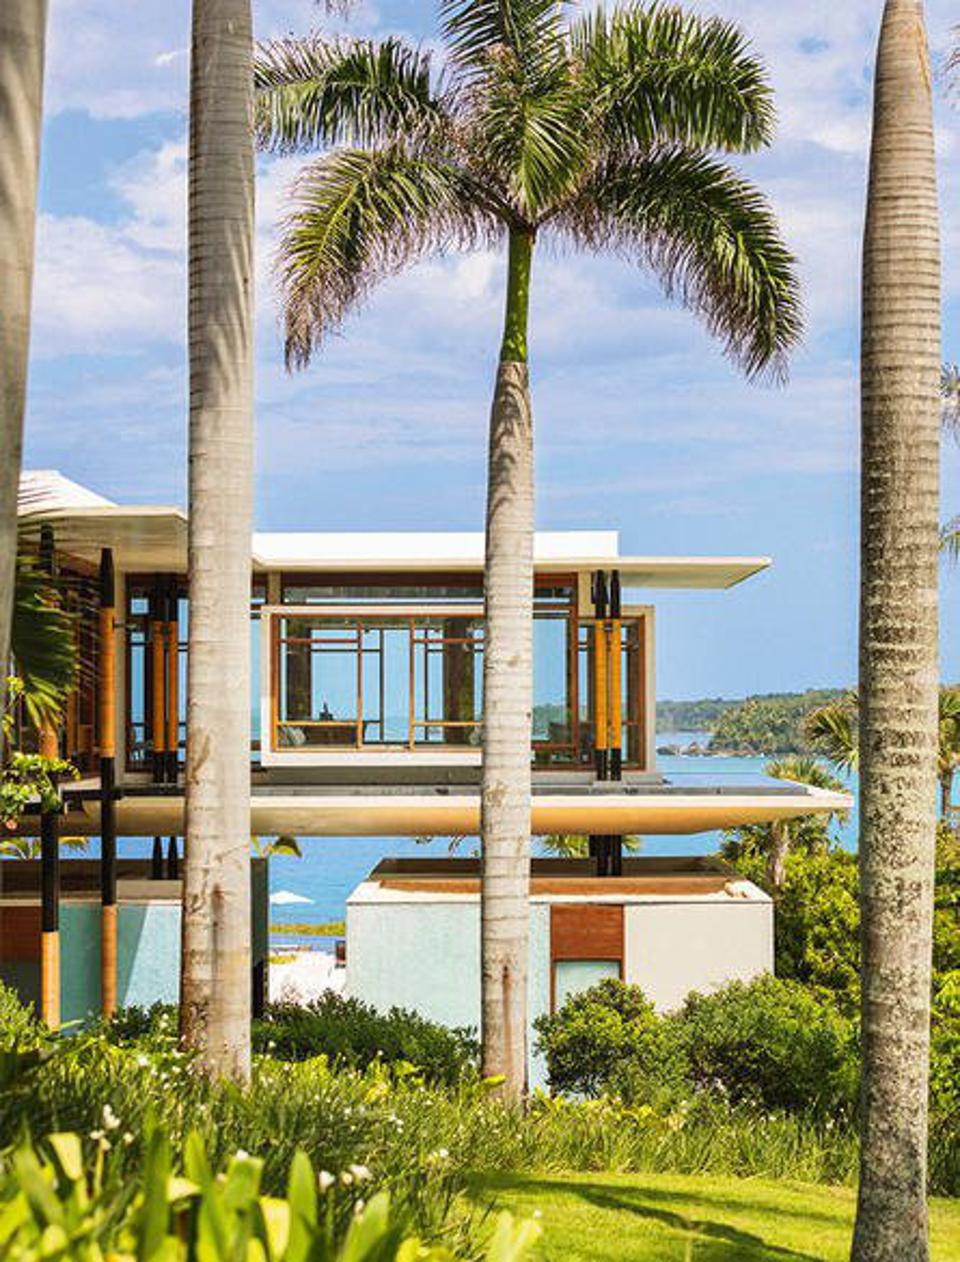 An exterior photo of Amanera resort in  Dominican Republic.